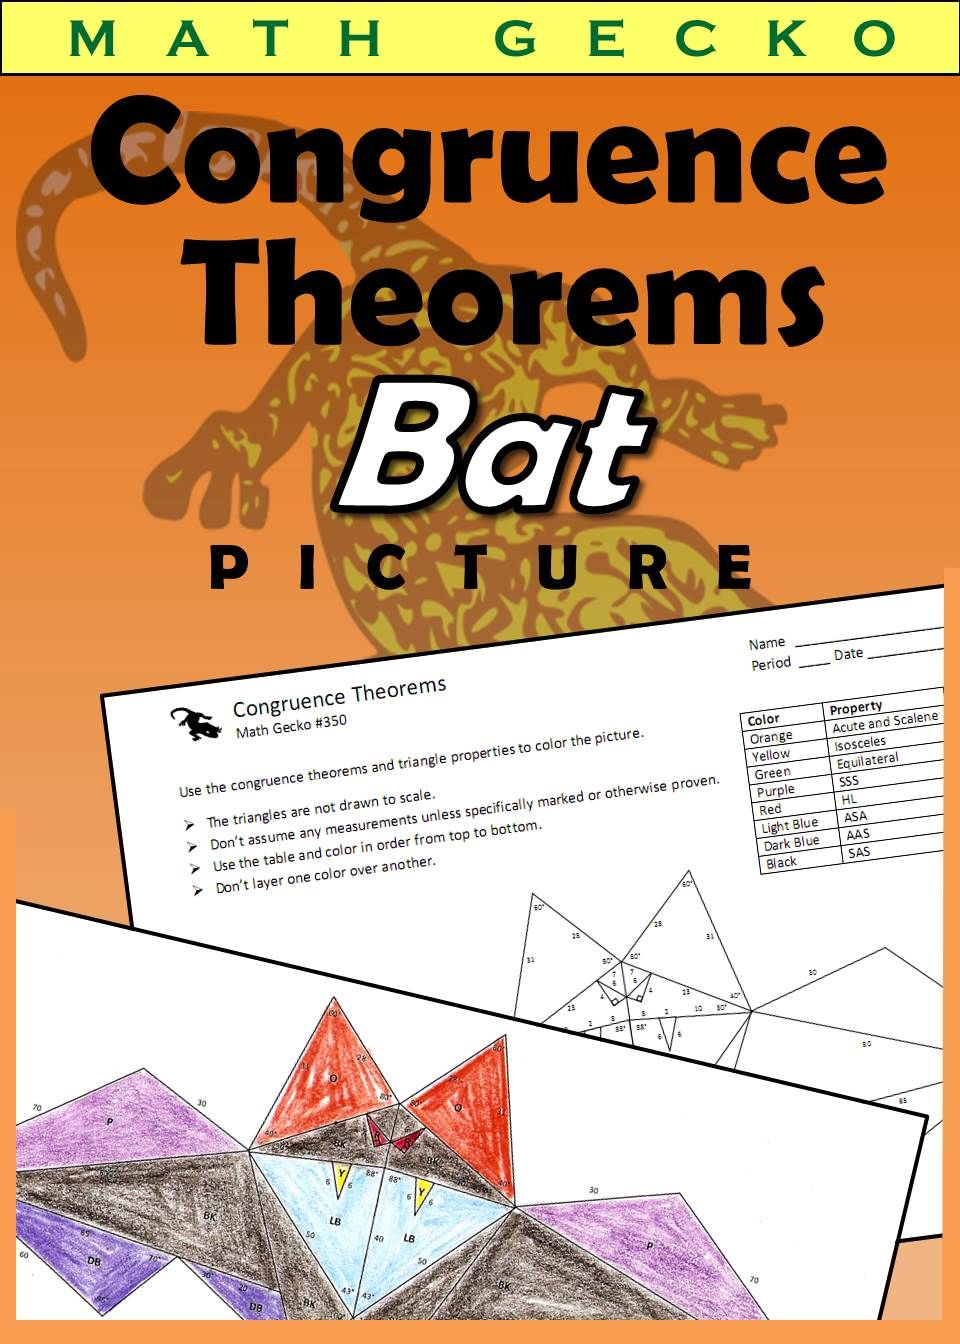 Triangle Congruence Theorems Picture Bat Theorems Math Activities Halloween Worksheets